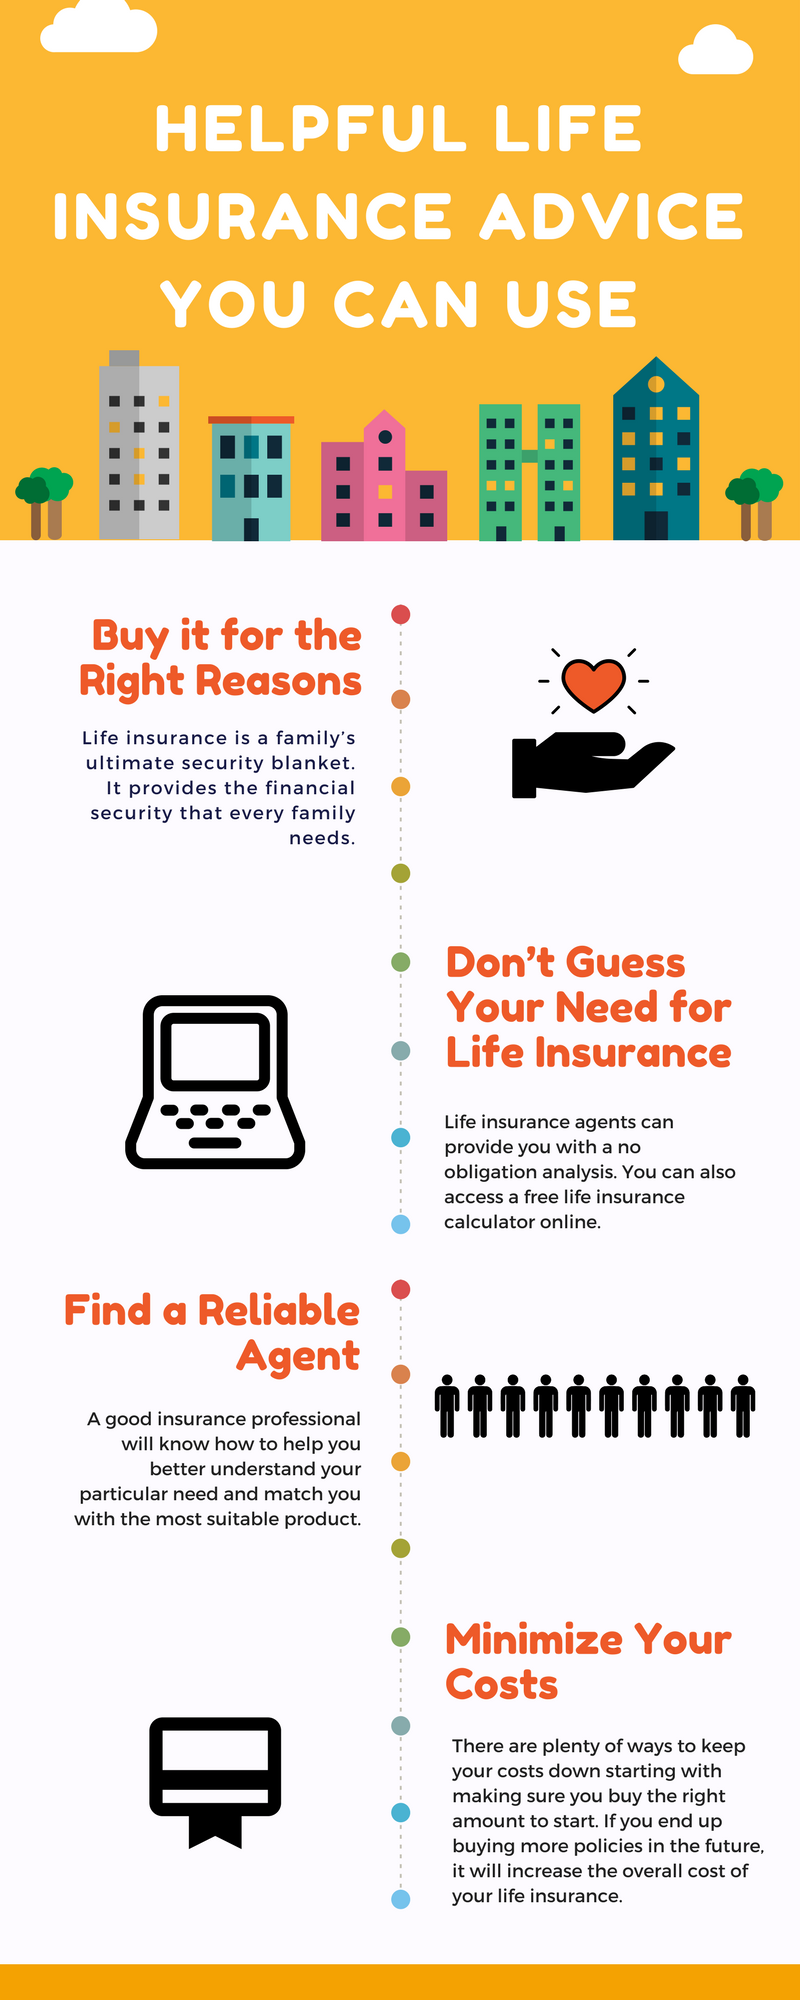 Helpful Life Insurance Advice You Can Use.png